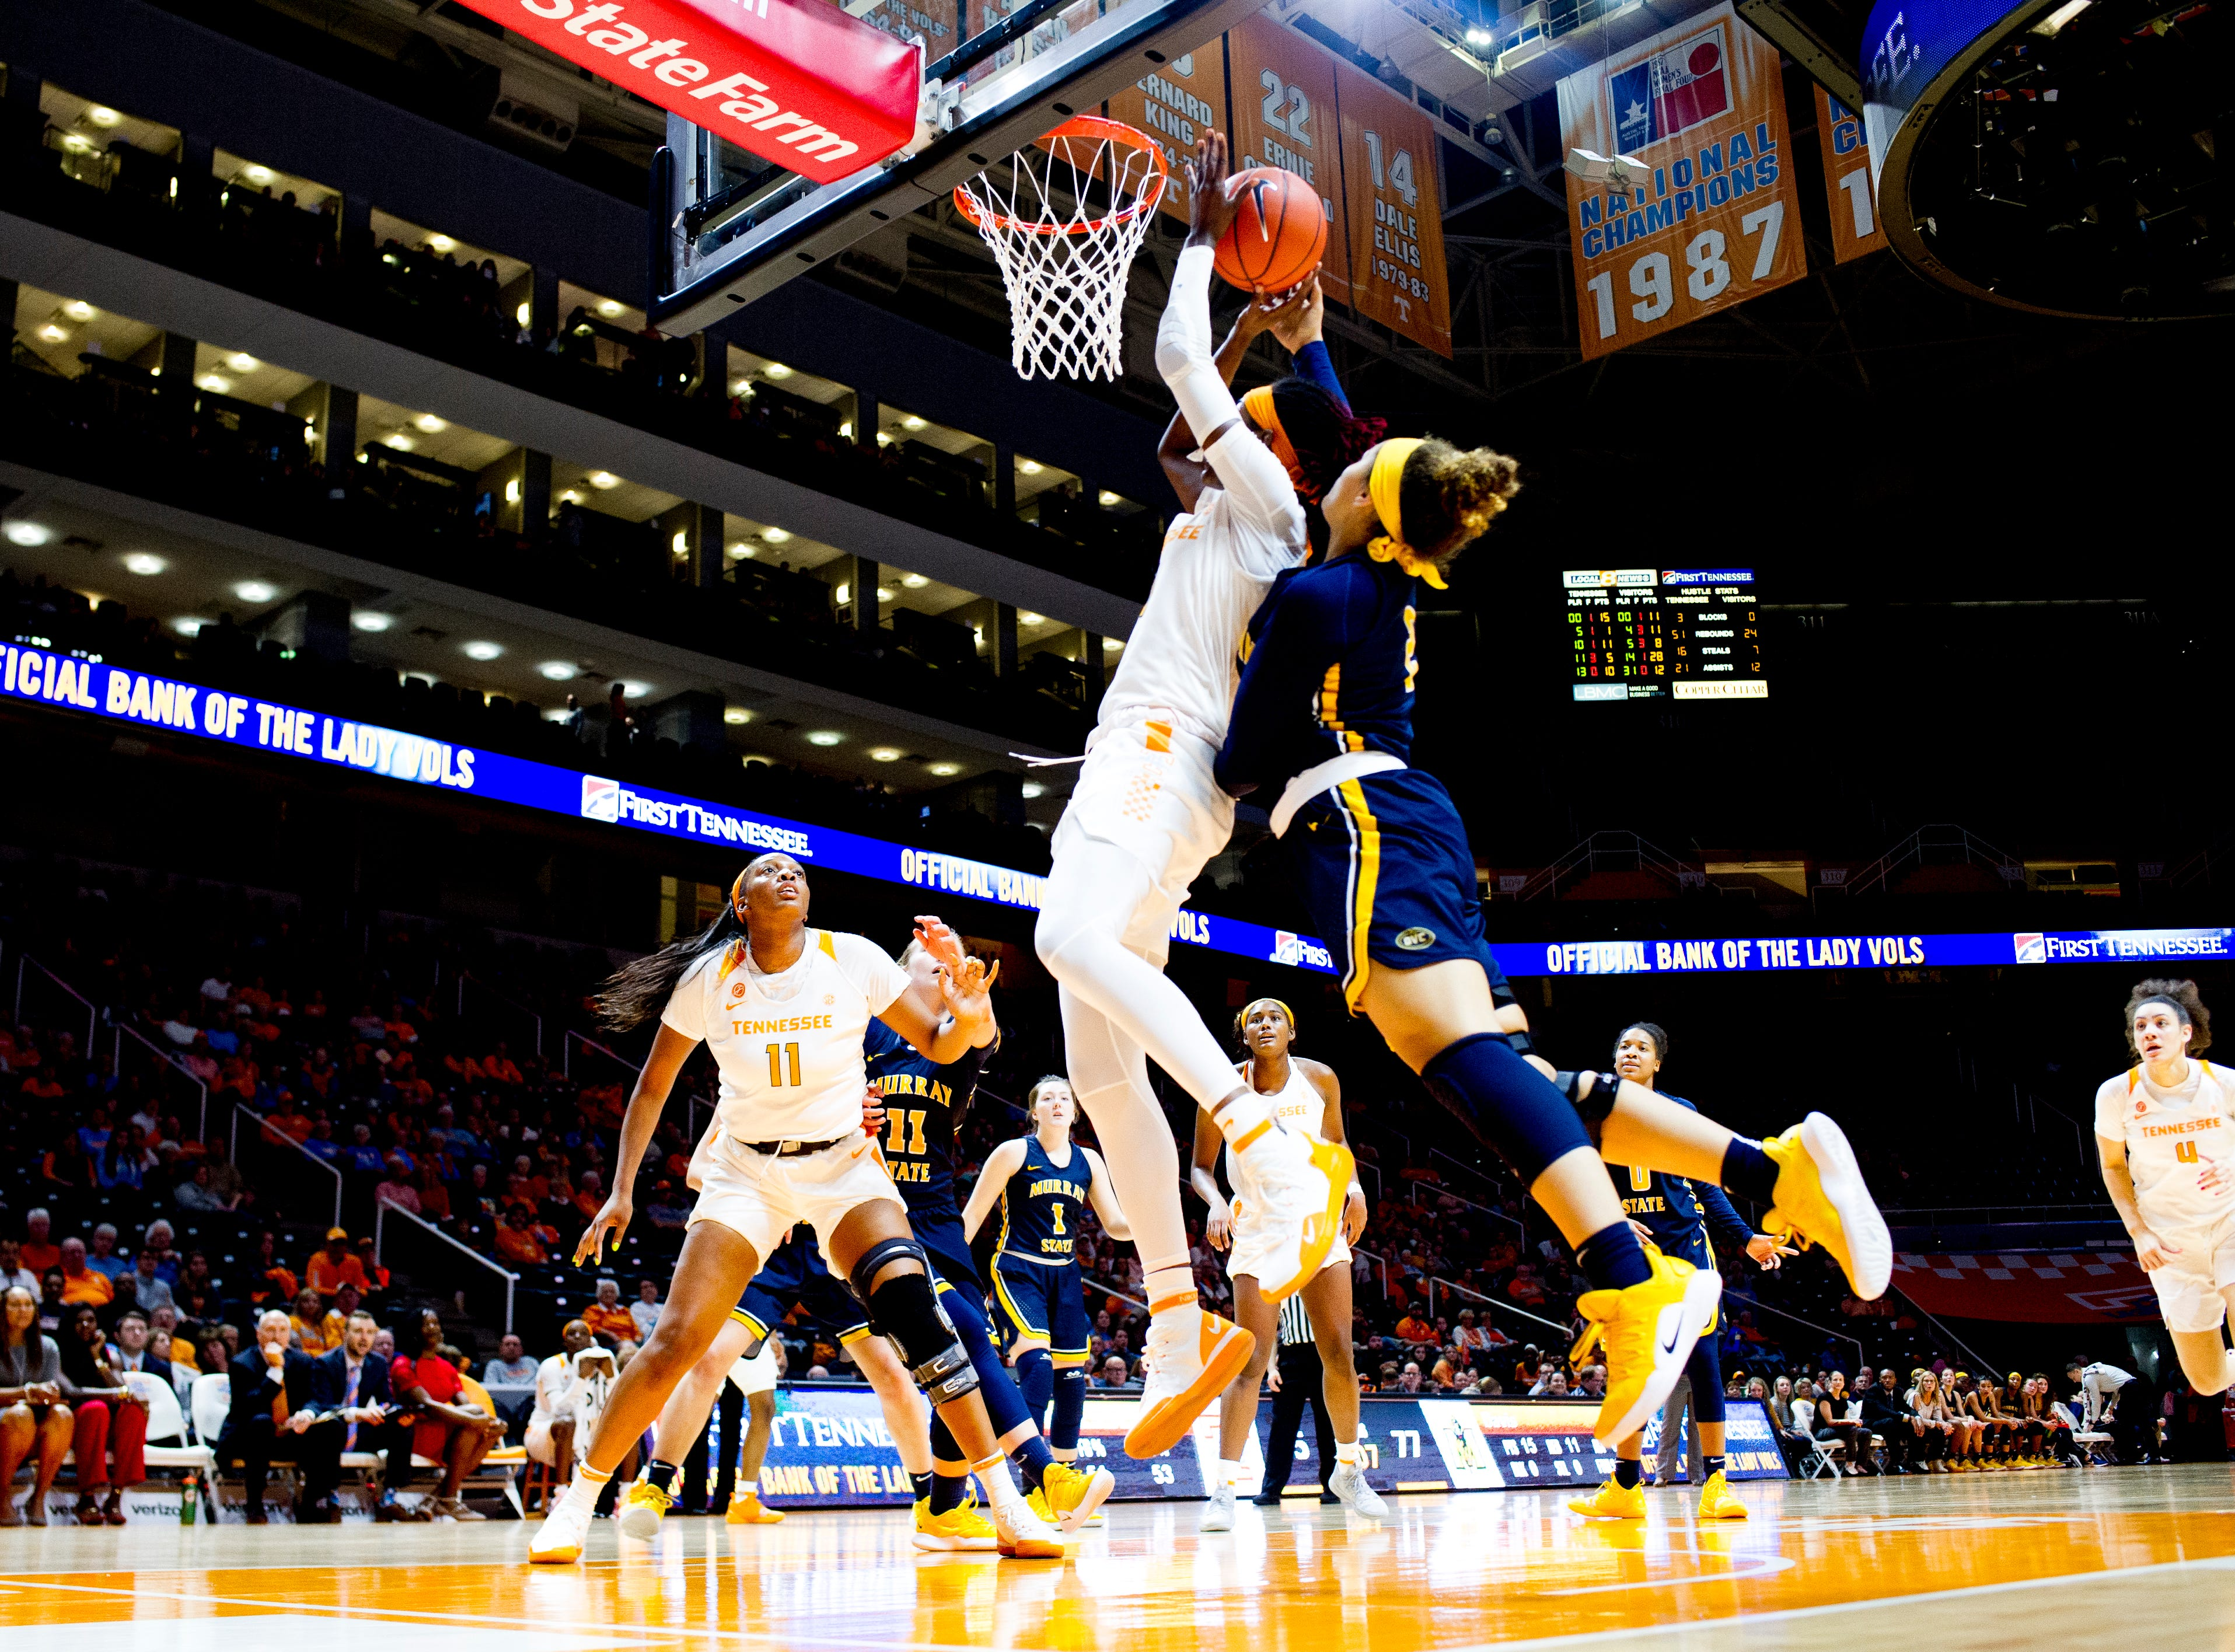 Tennessee guard/forward Rennia Davis (0) shoots a layup as Murray State defends during a game between the Tennessee Lady Vols and Murray State at Thompson-Boling Arena in Knoxville, Tennessee on Friday, December 28, 2018.